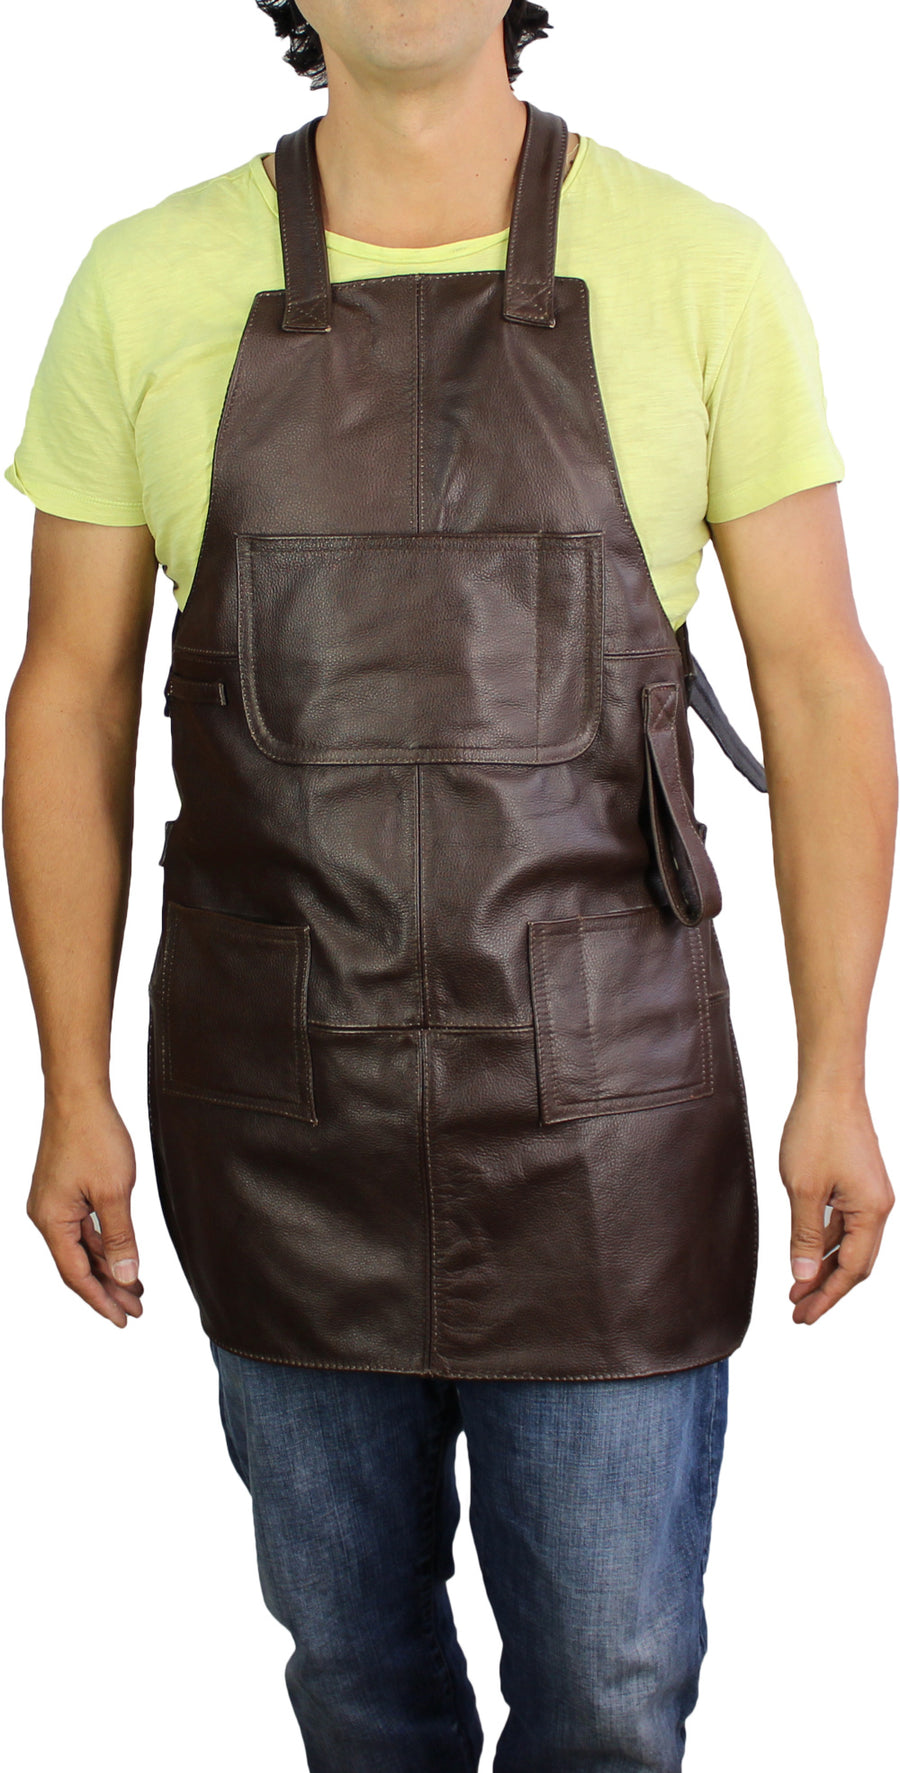 MULTIPOCKETS Leather Apron Brown - High Protection - Custom-Made Name Initials - PDCollection Leatherwear - Online Shop